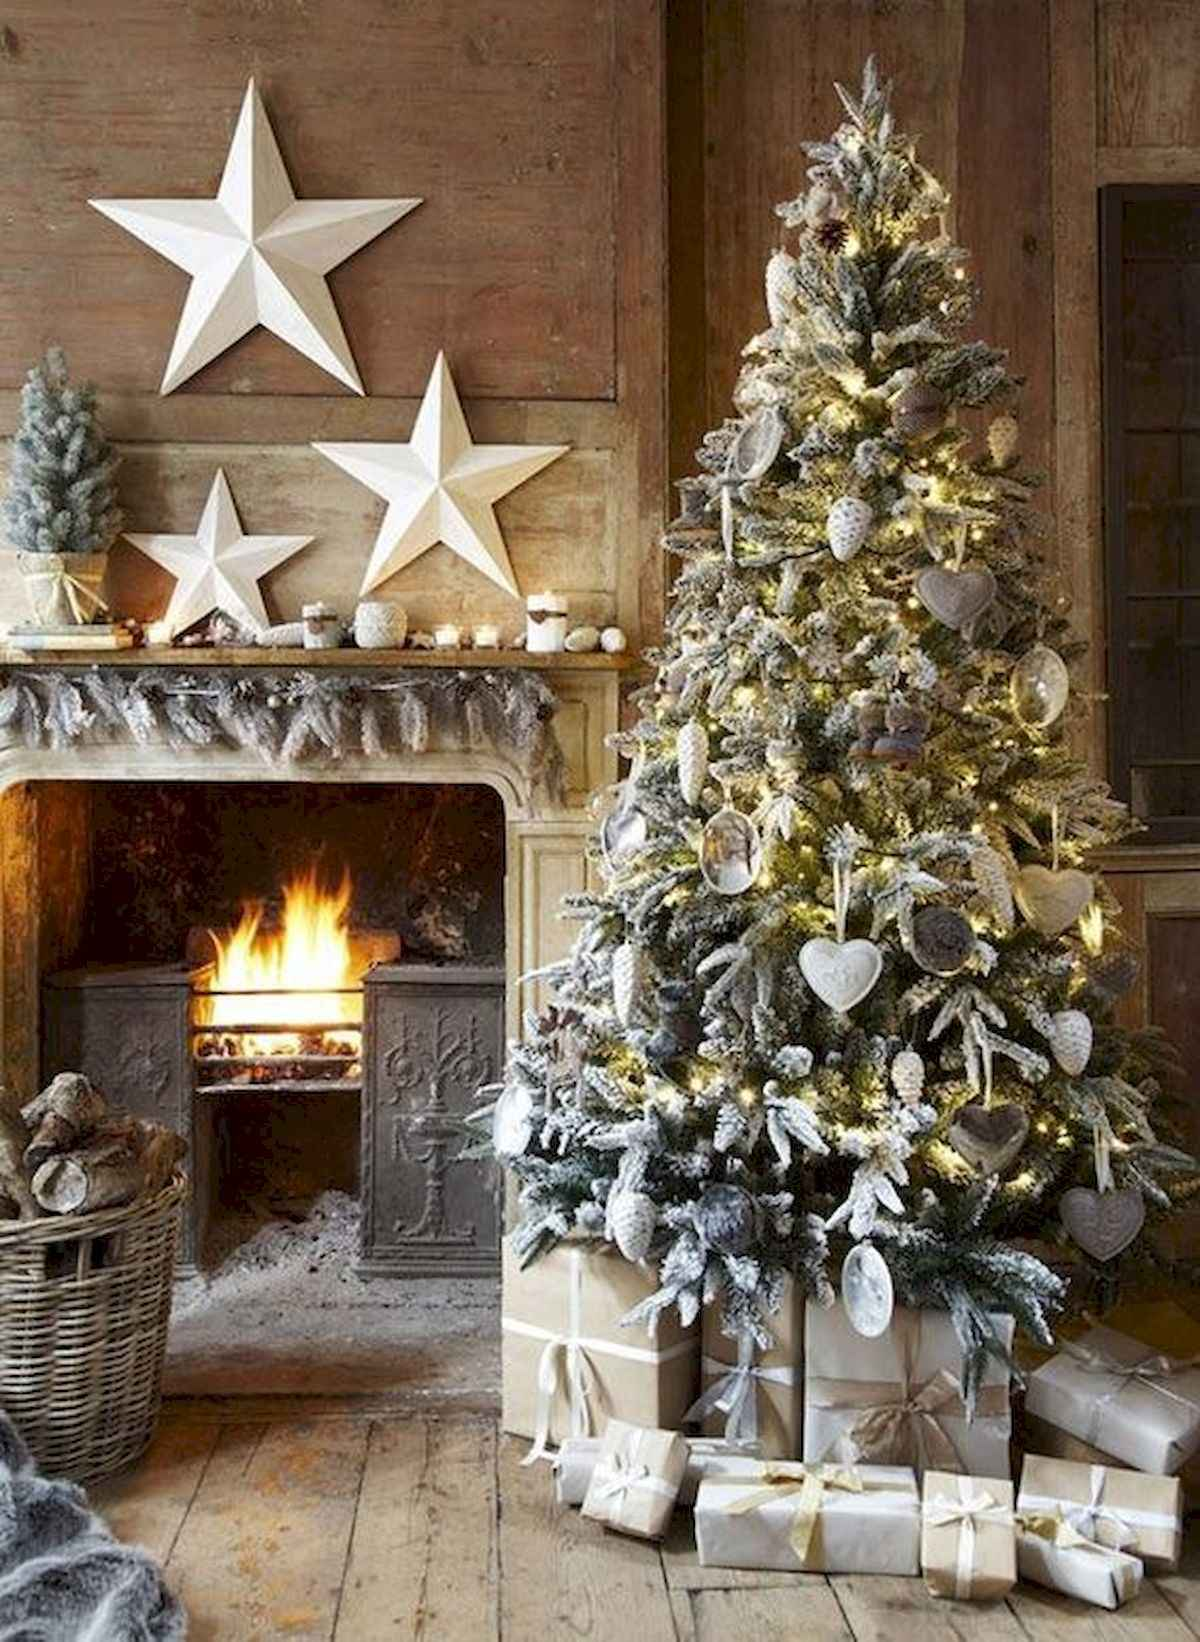 60 awesome christmas tree decorations ideas (30)